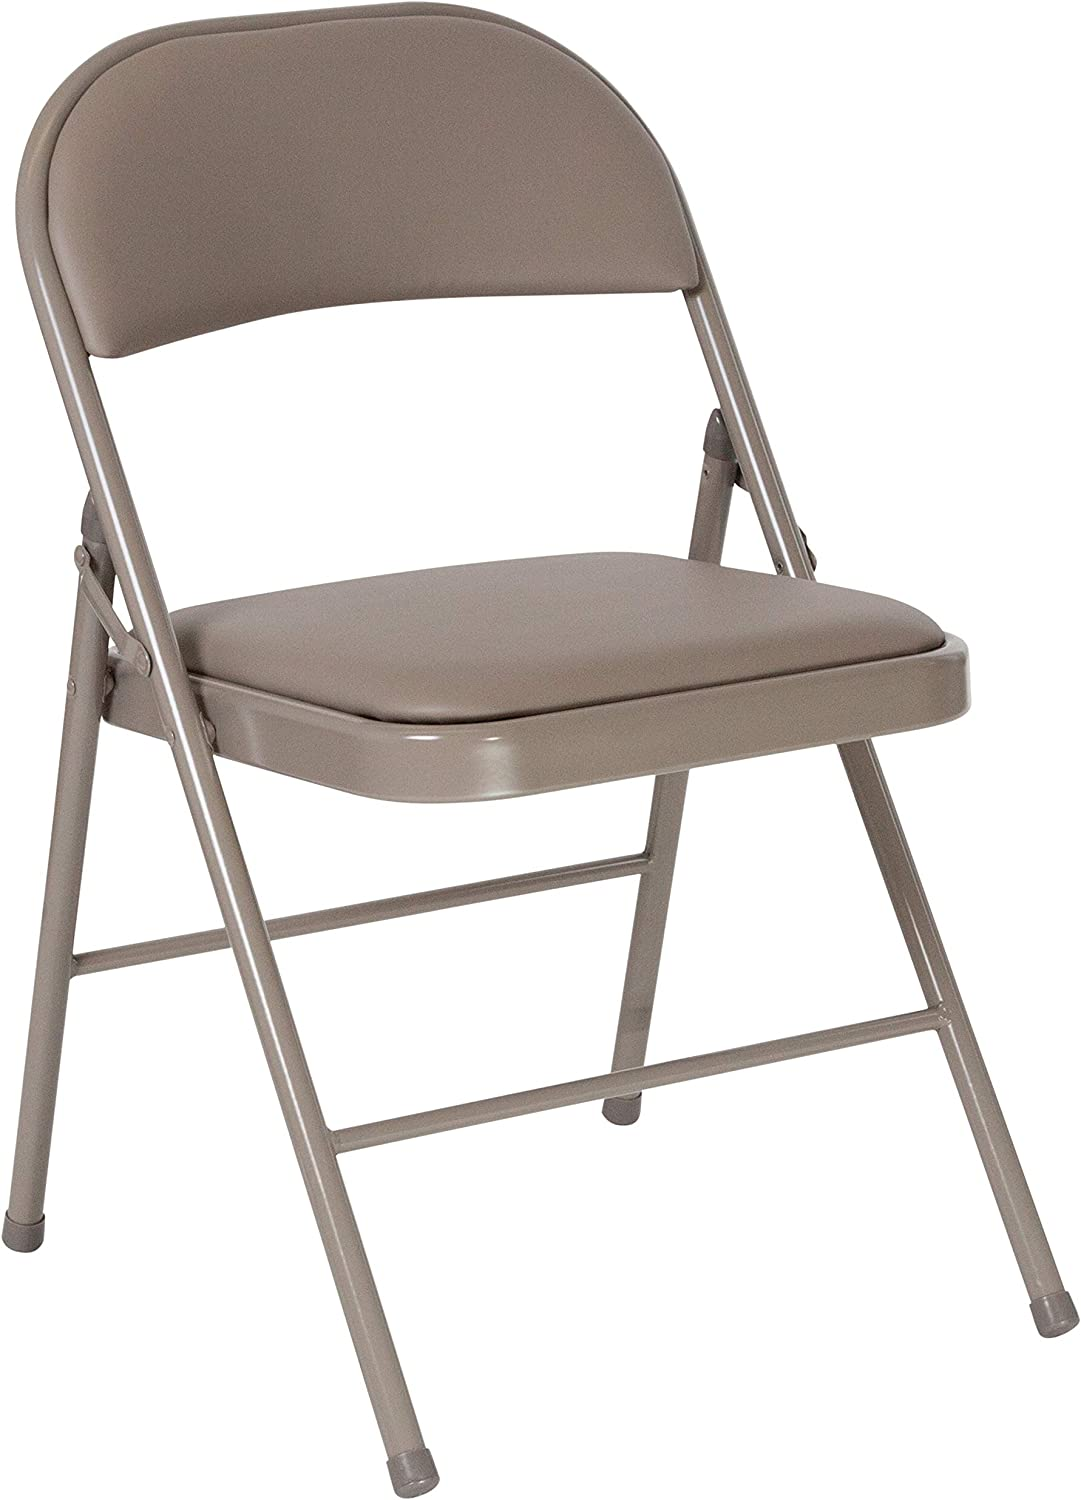 Flash Furniture HERCULES Series Double Braced Gray Vinyl Folding Chair